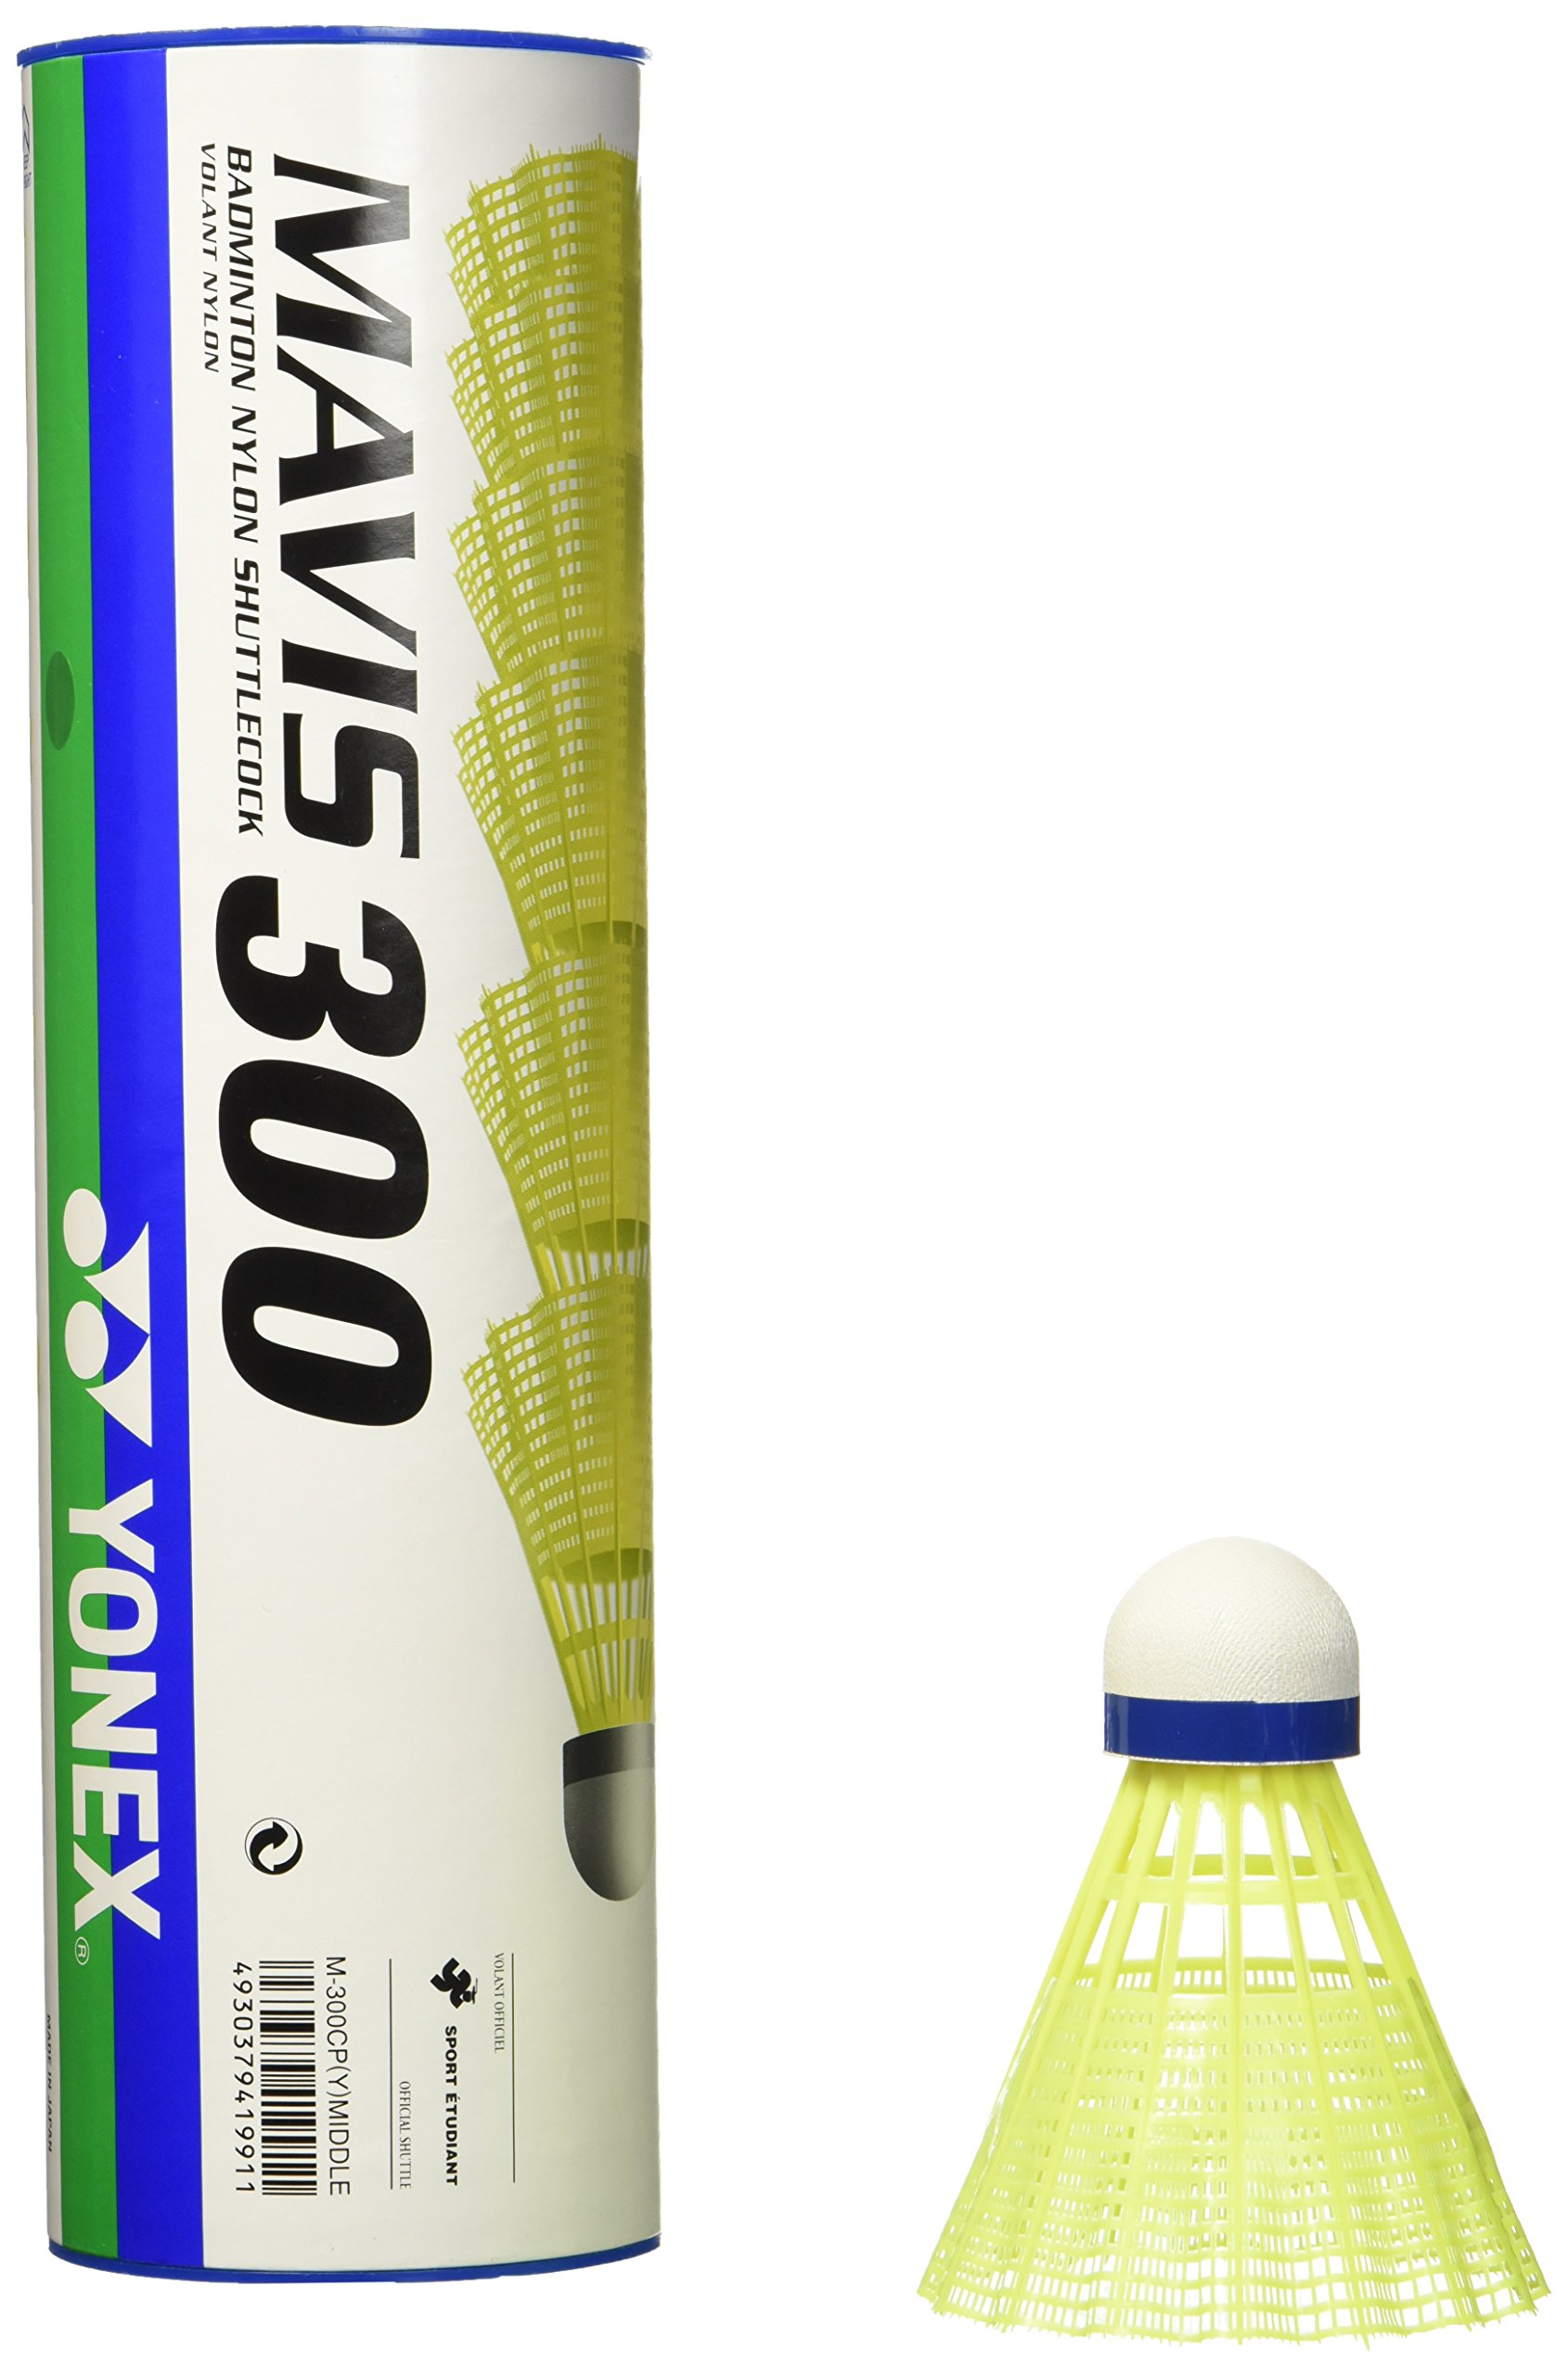 YONEX MAVIS 300 Badminton Medium Speed Volant Nylon Shuttlecock